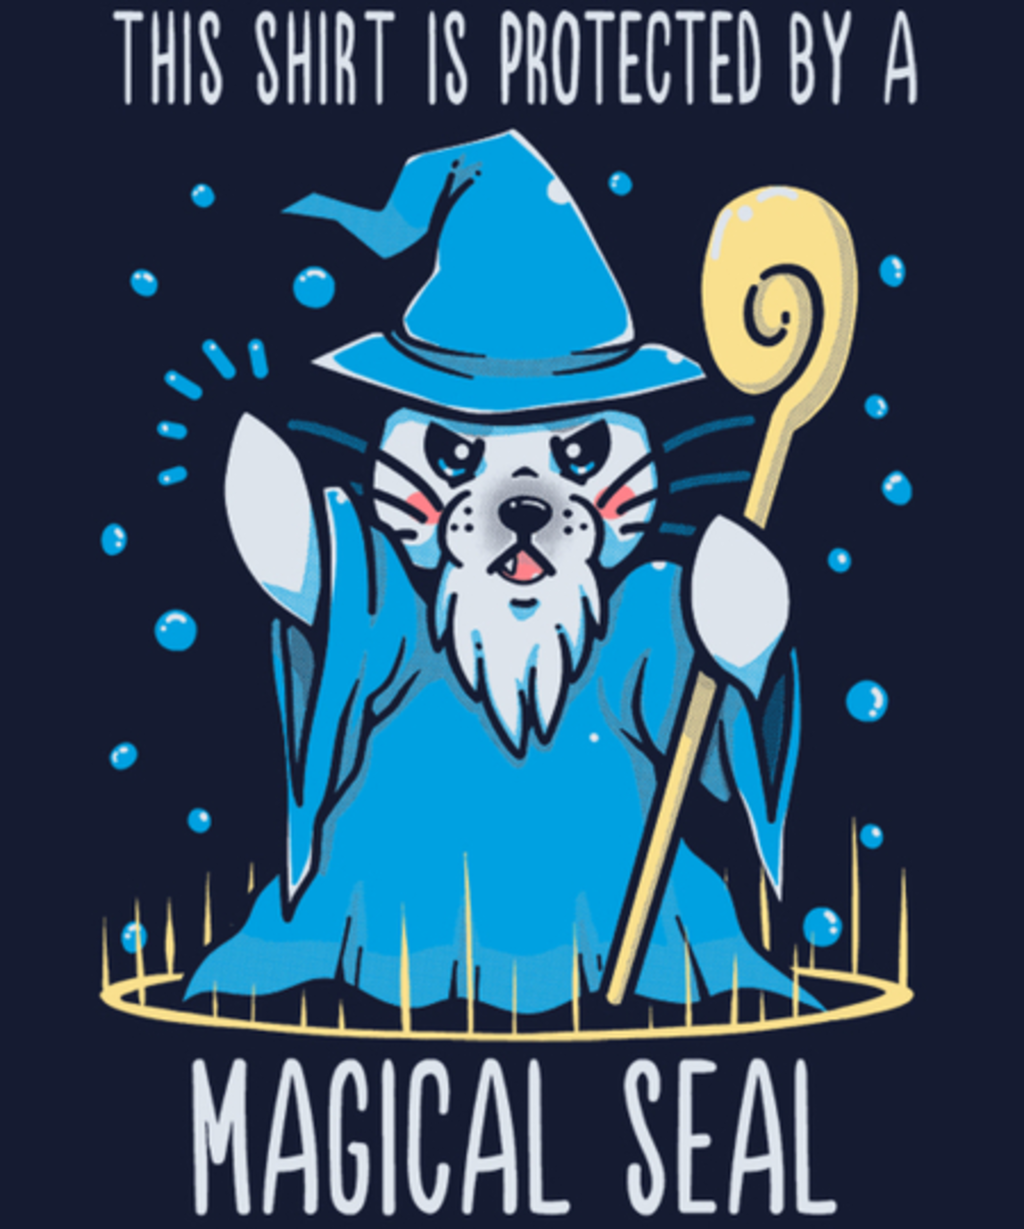 Qwertee: Protected by a Magical Seal